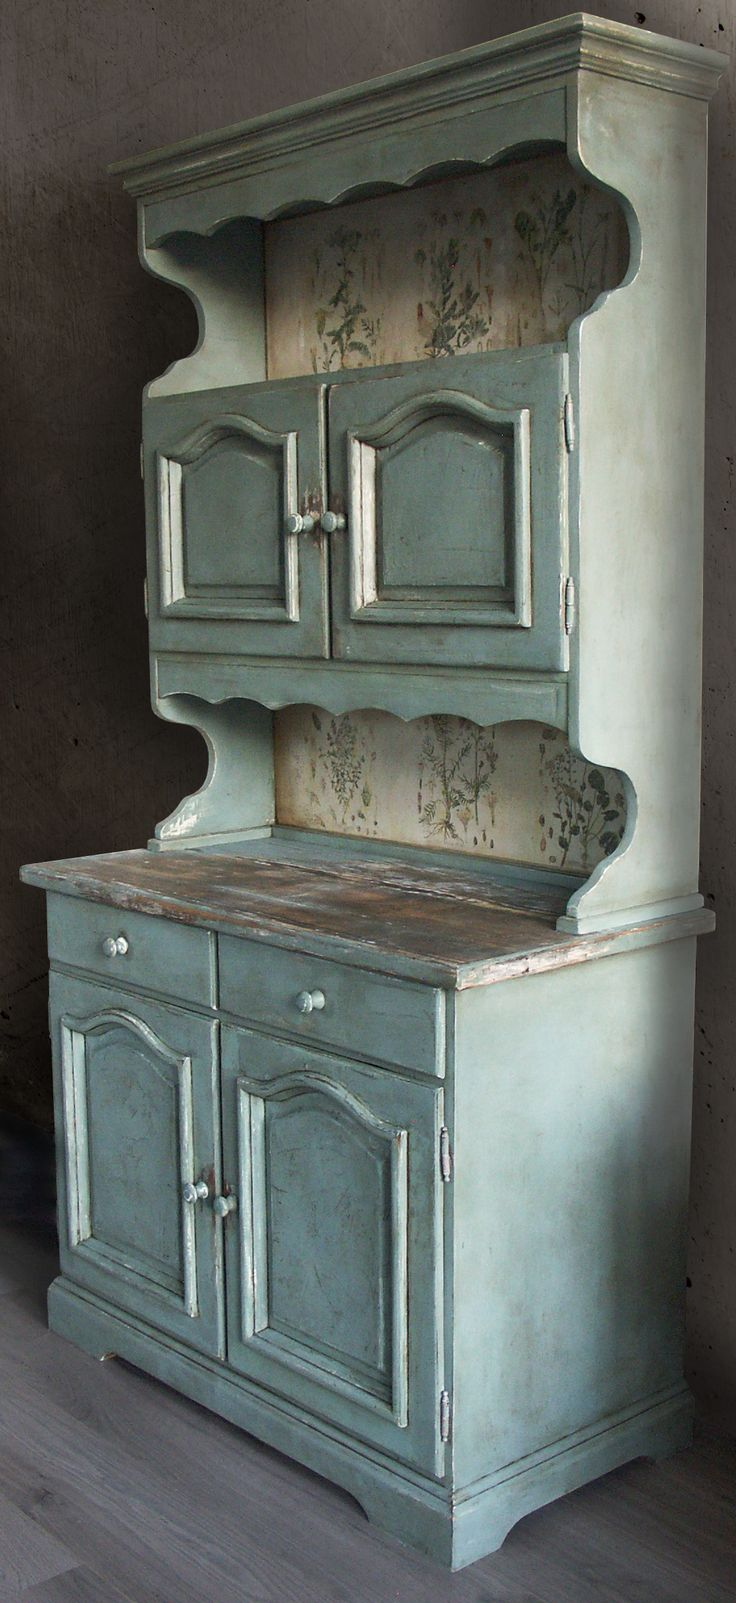 Cupboard in Annie Sloan Duck Egg Blue. My own design: hand painted, distressed and waxed with herbal boards. Eacolours design, check out my Esty shop https://www.etsy.com/shop/eacolours